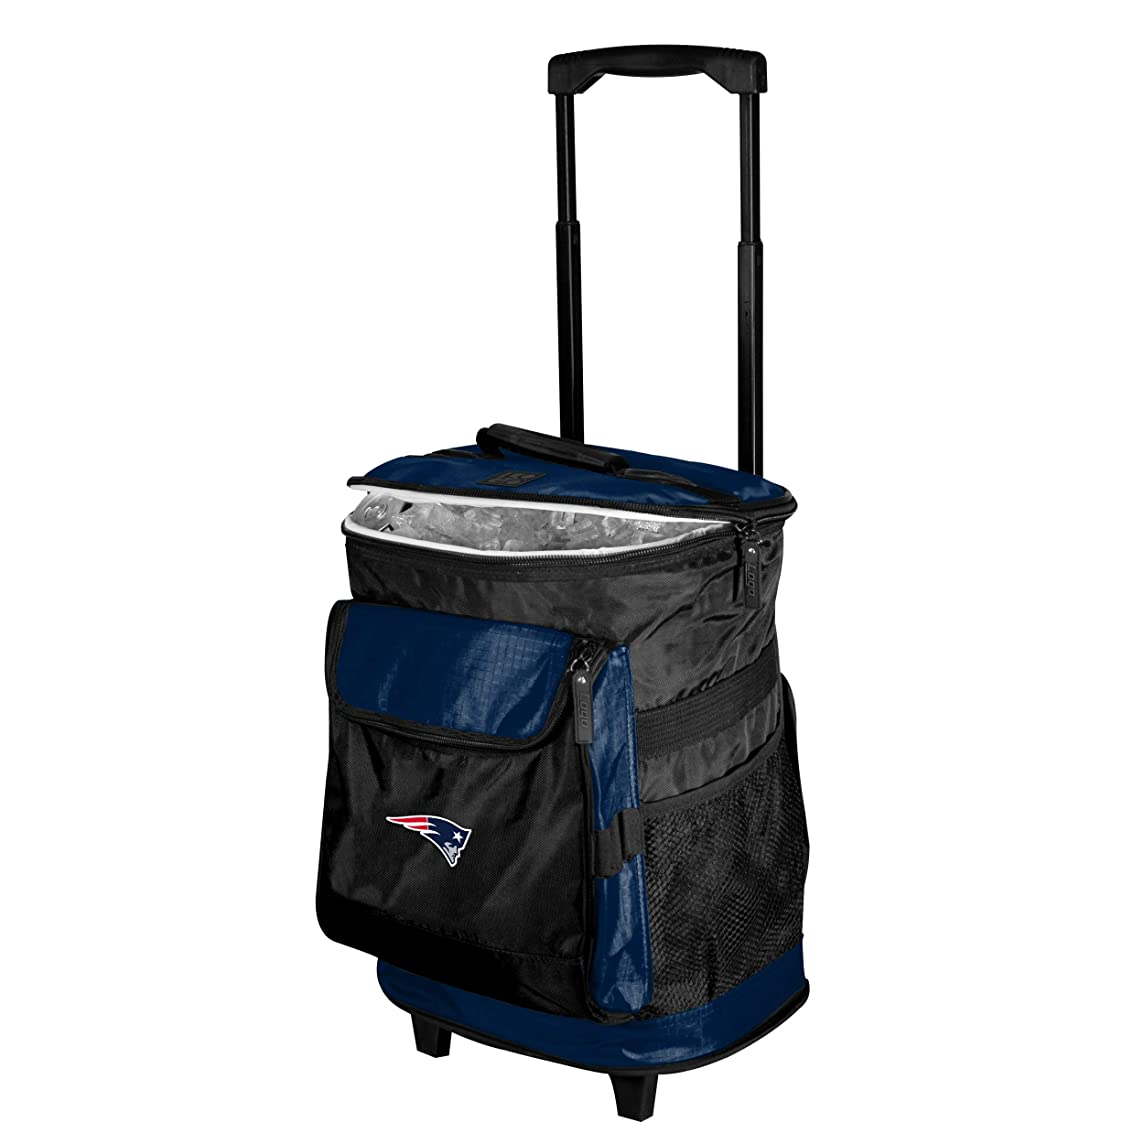 NFL 48-Can Rolling Cooler with Wheels and Backpack Straps